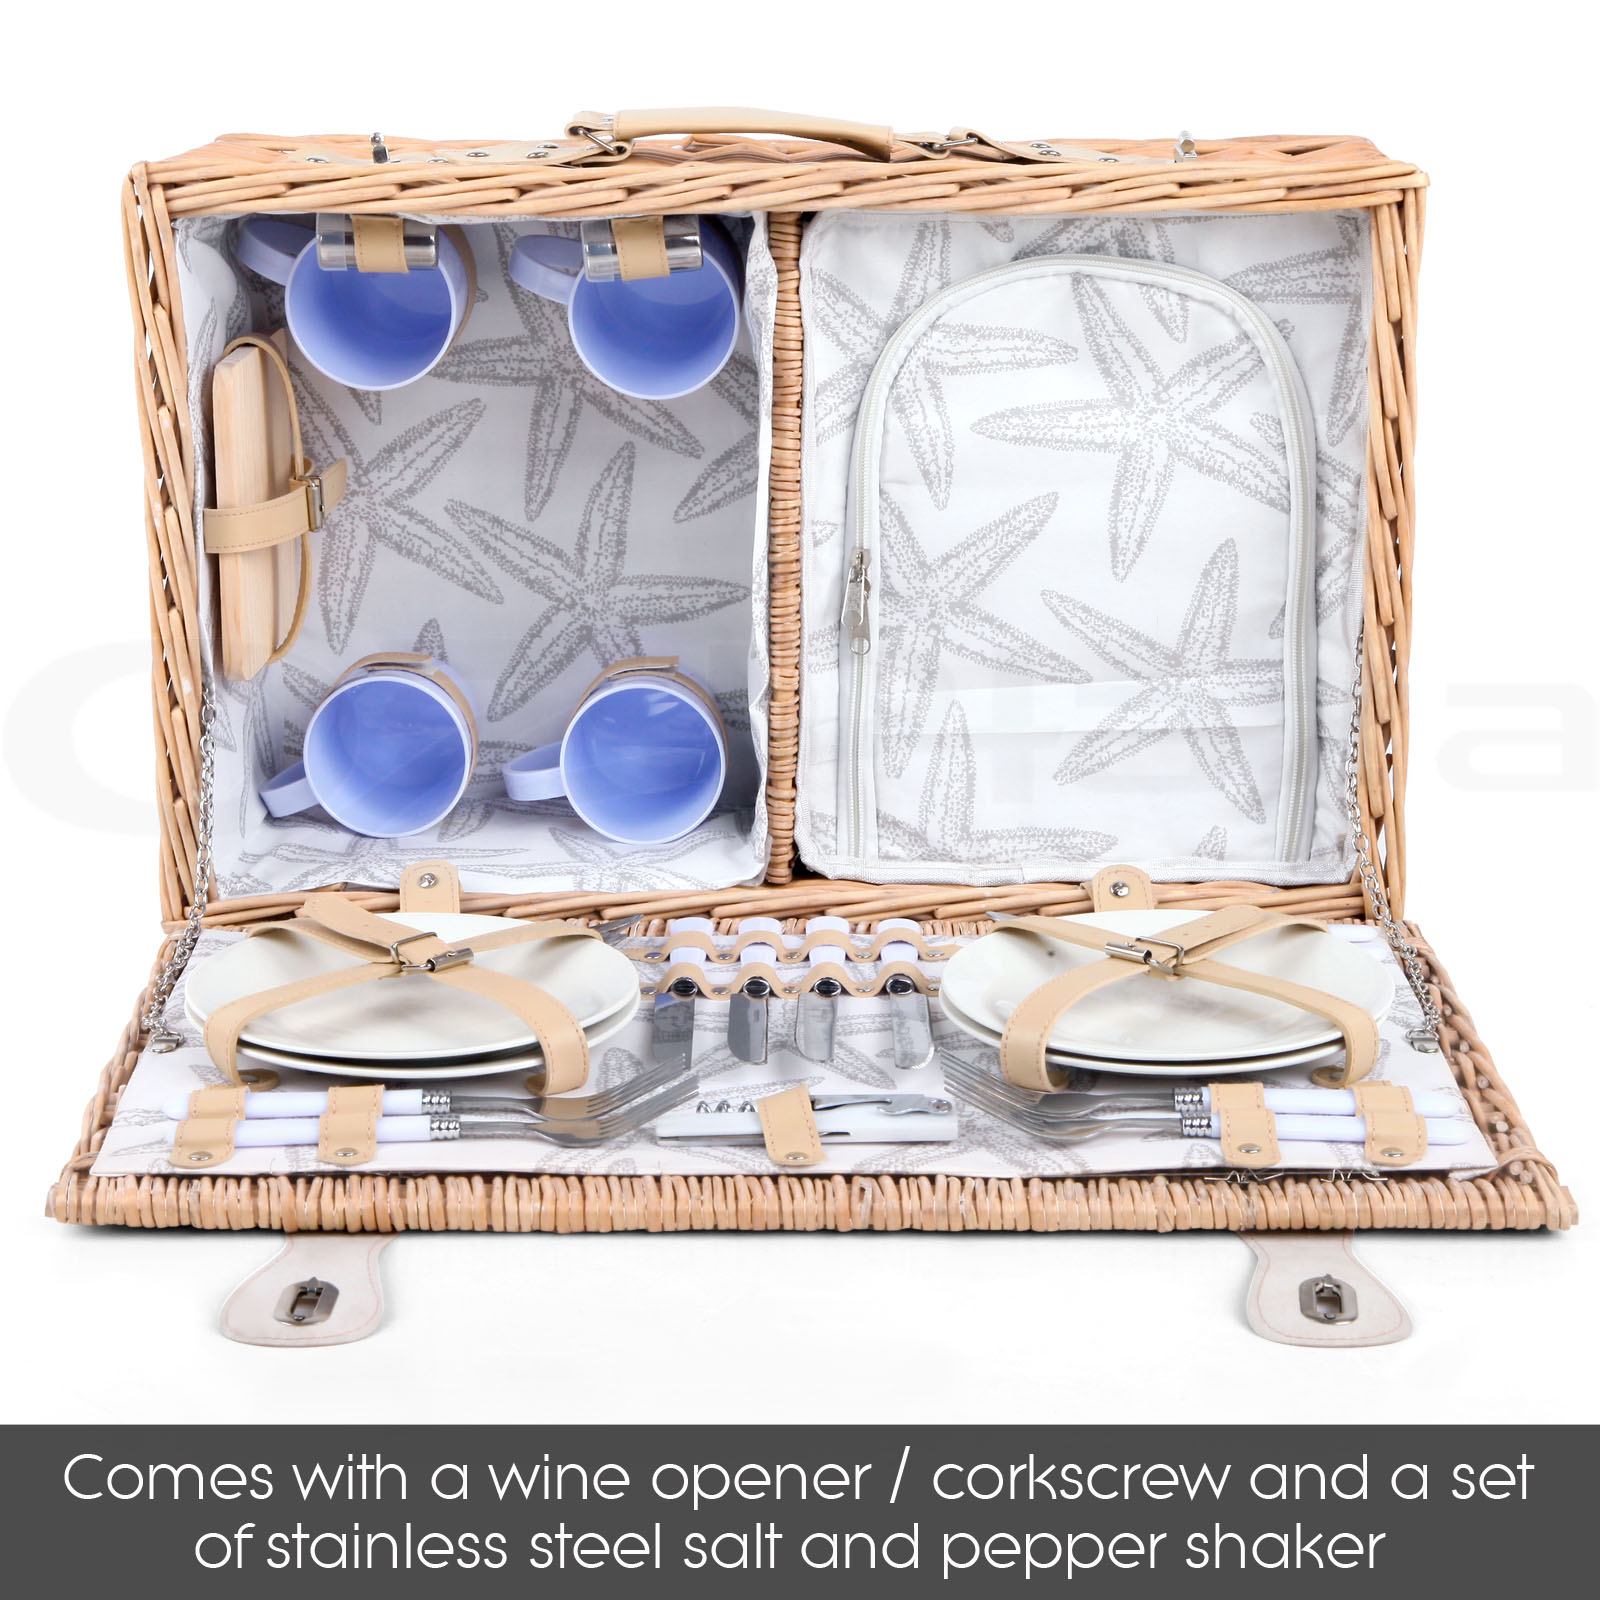 4 Person Insulated Picnic Basket : Deluxe person insulated picnic basket hamper set